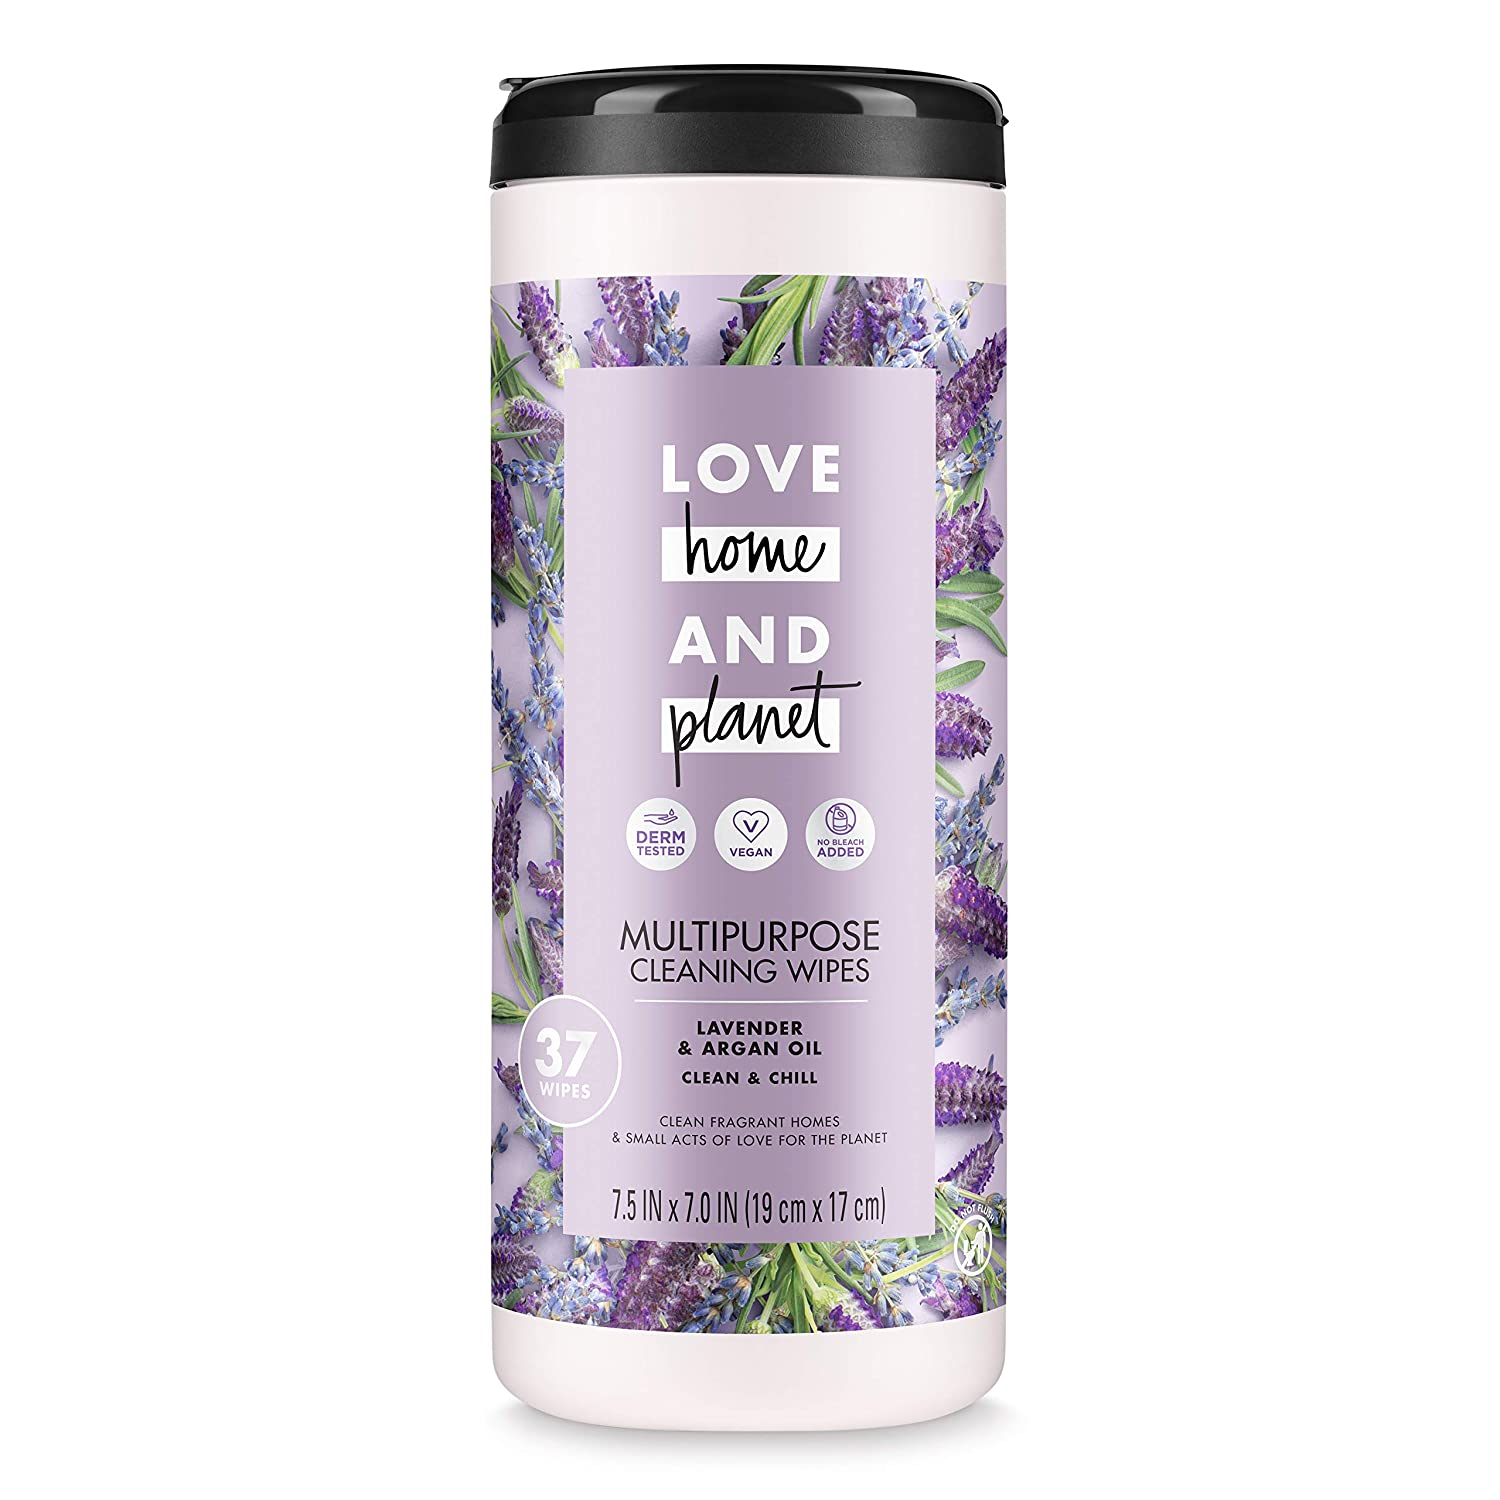 Love Home and Planet Multi-Purpose Cleaning Wipes, Lavender & Argan Oil, 37 count